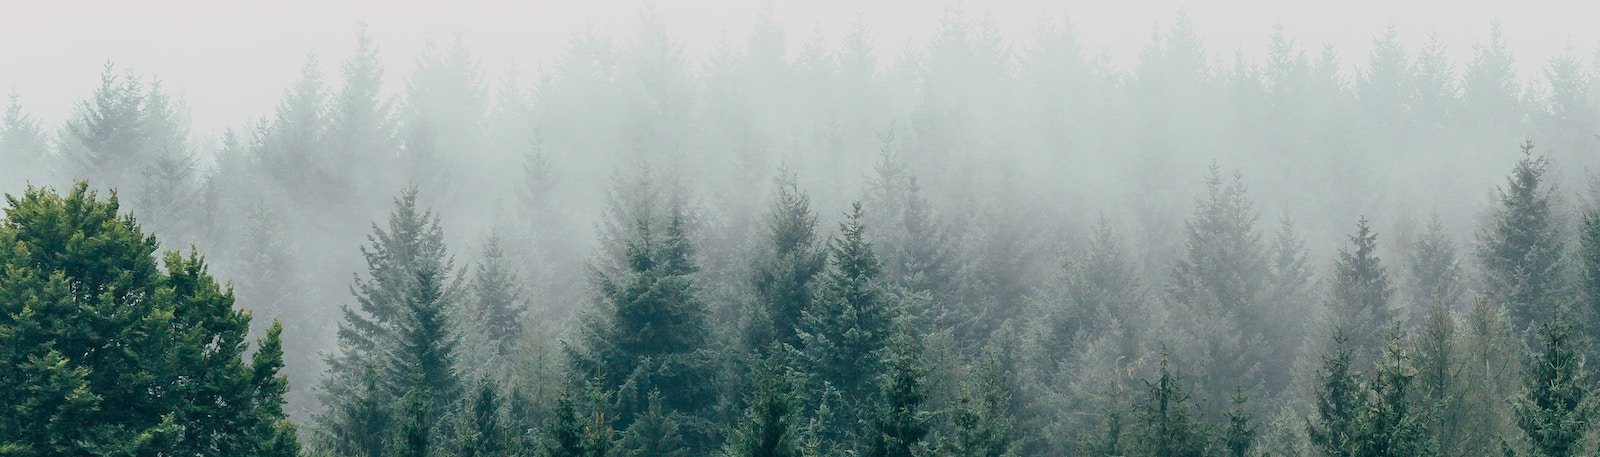 Forest of evergreen trees with fog.